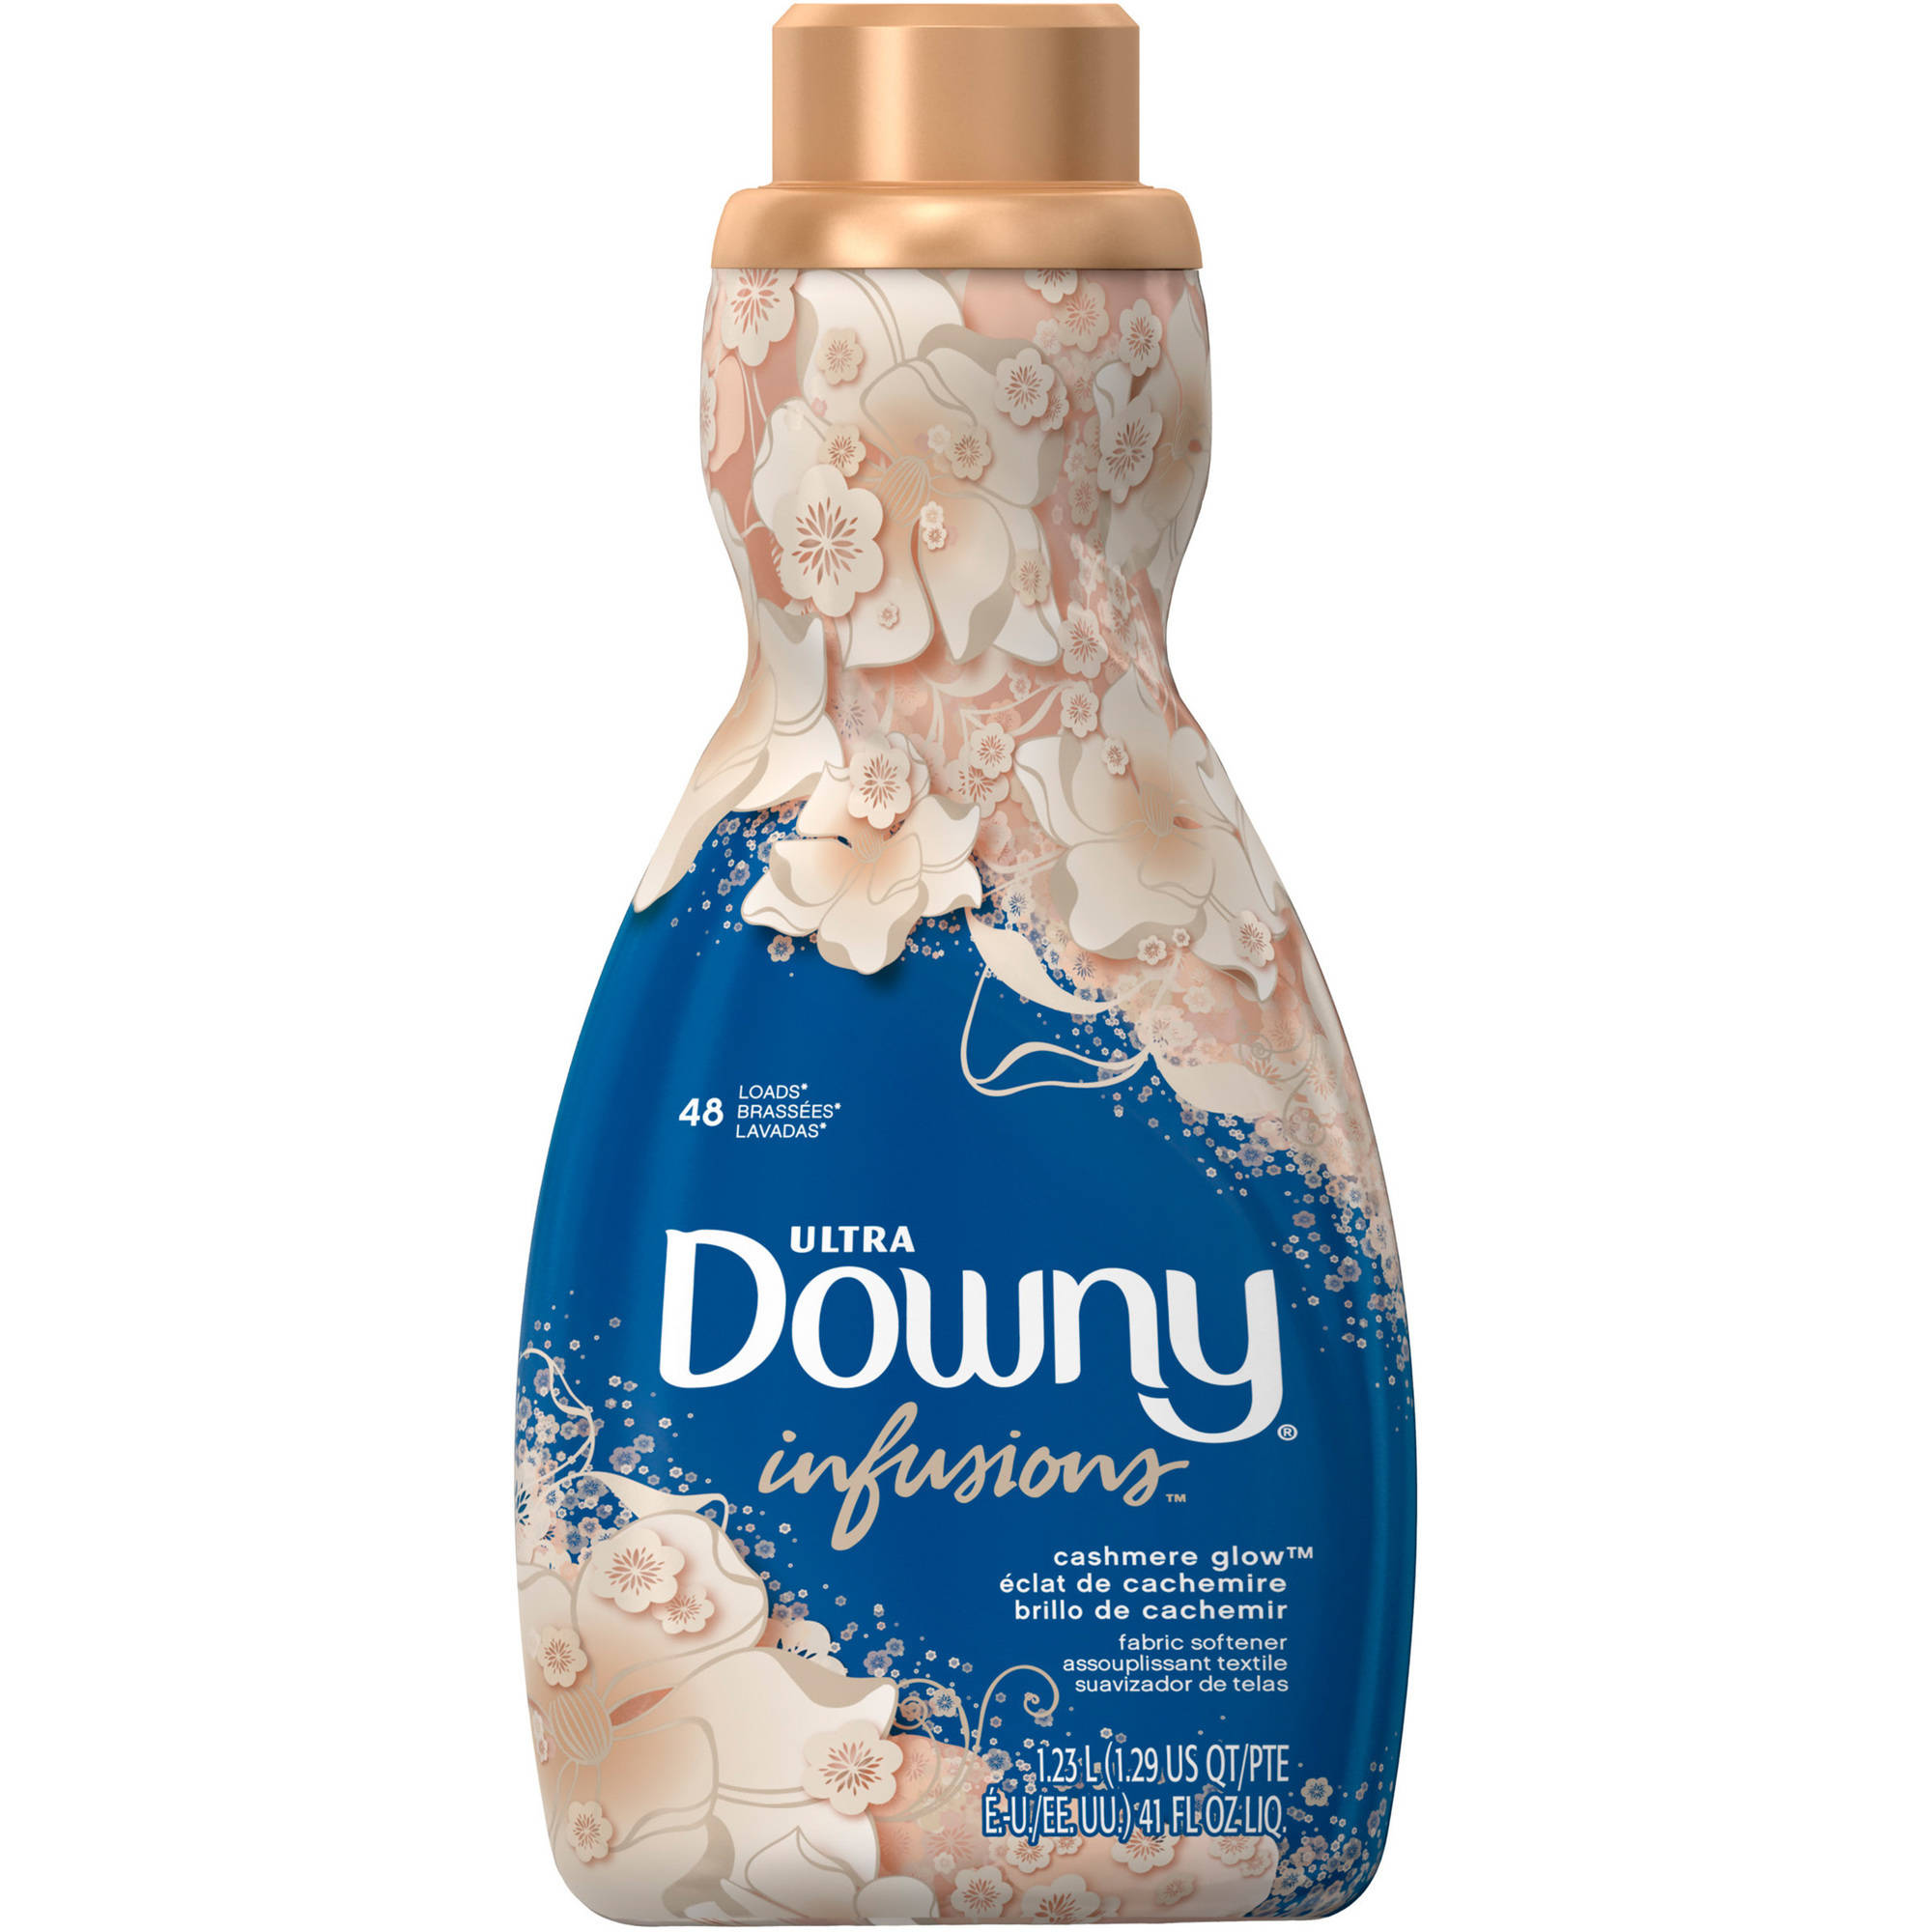 Ultra Downy Infusions Cashmere Glow Liquid Fabric Conditioner, 41 fl oz